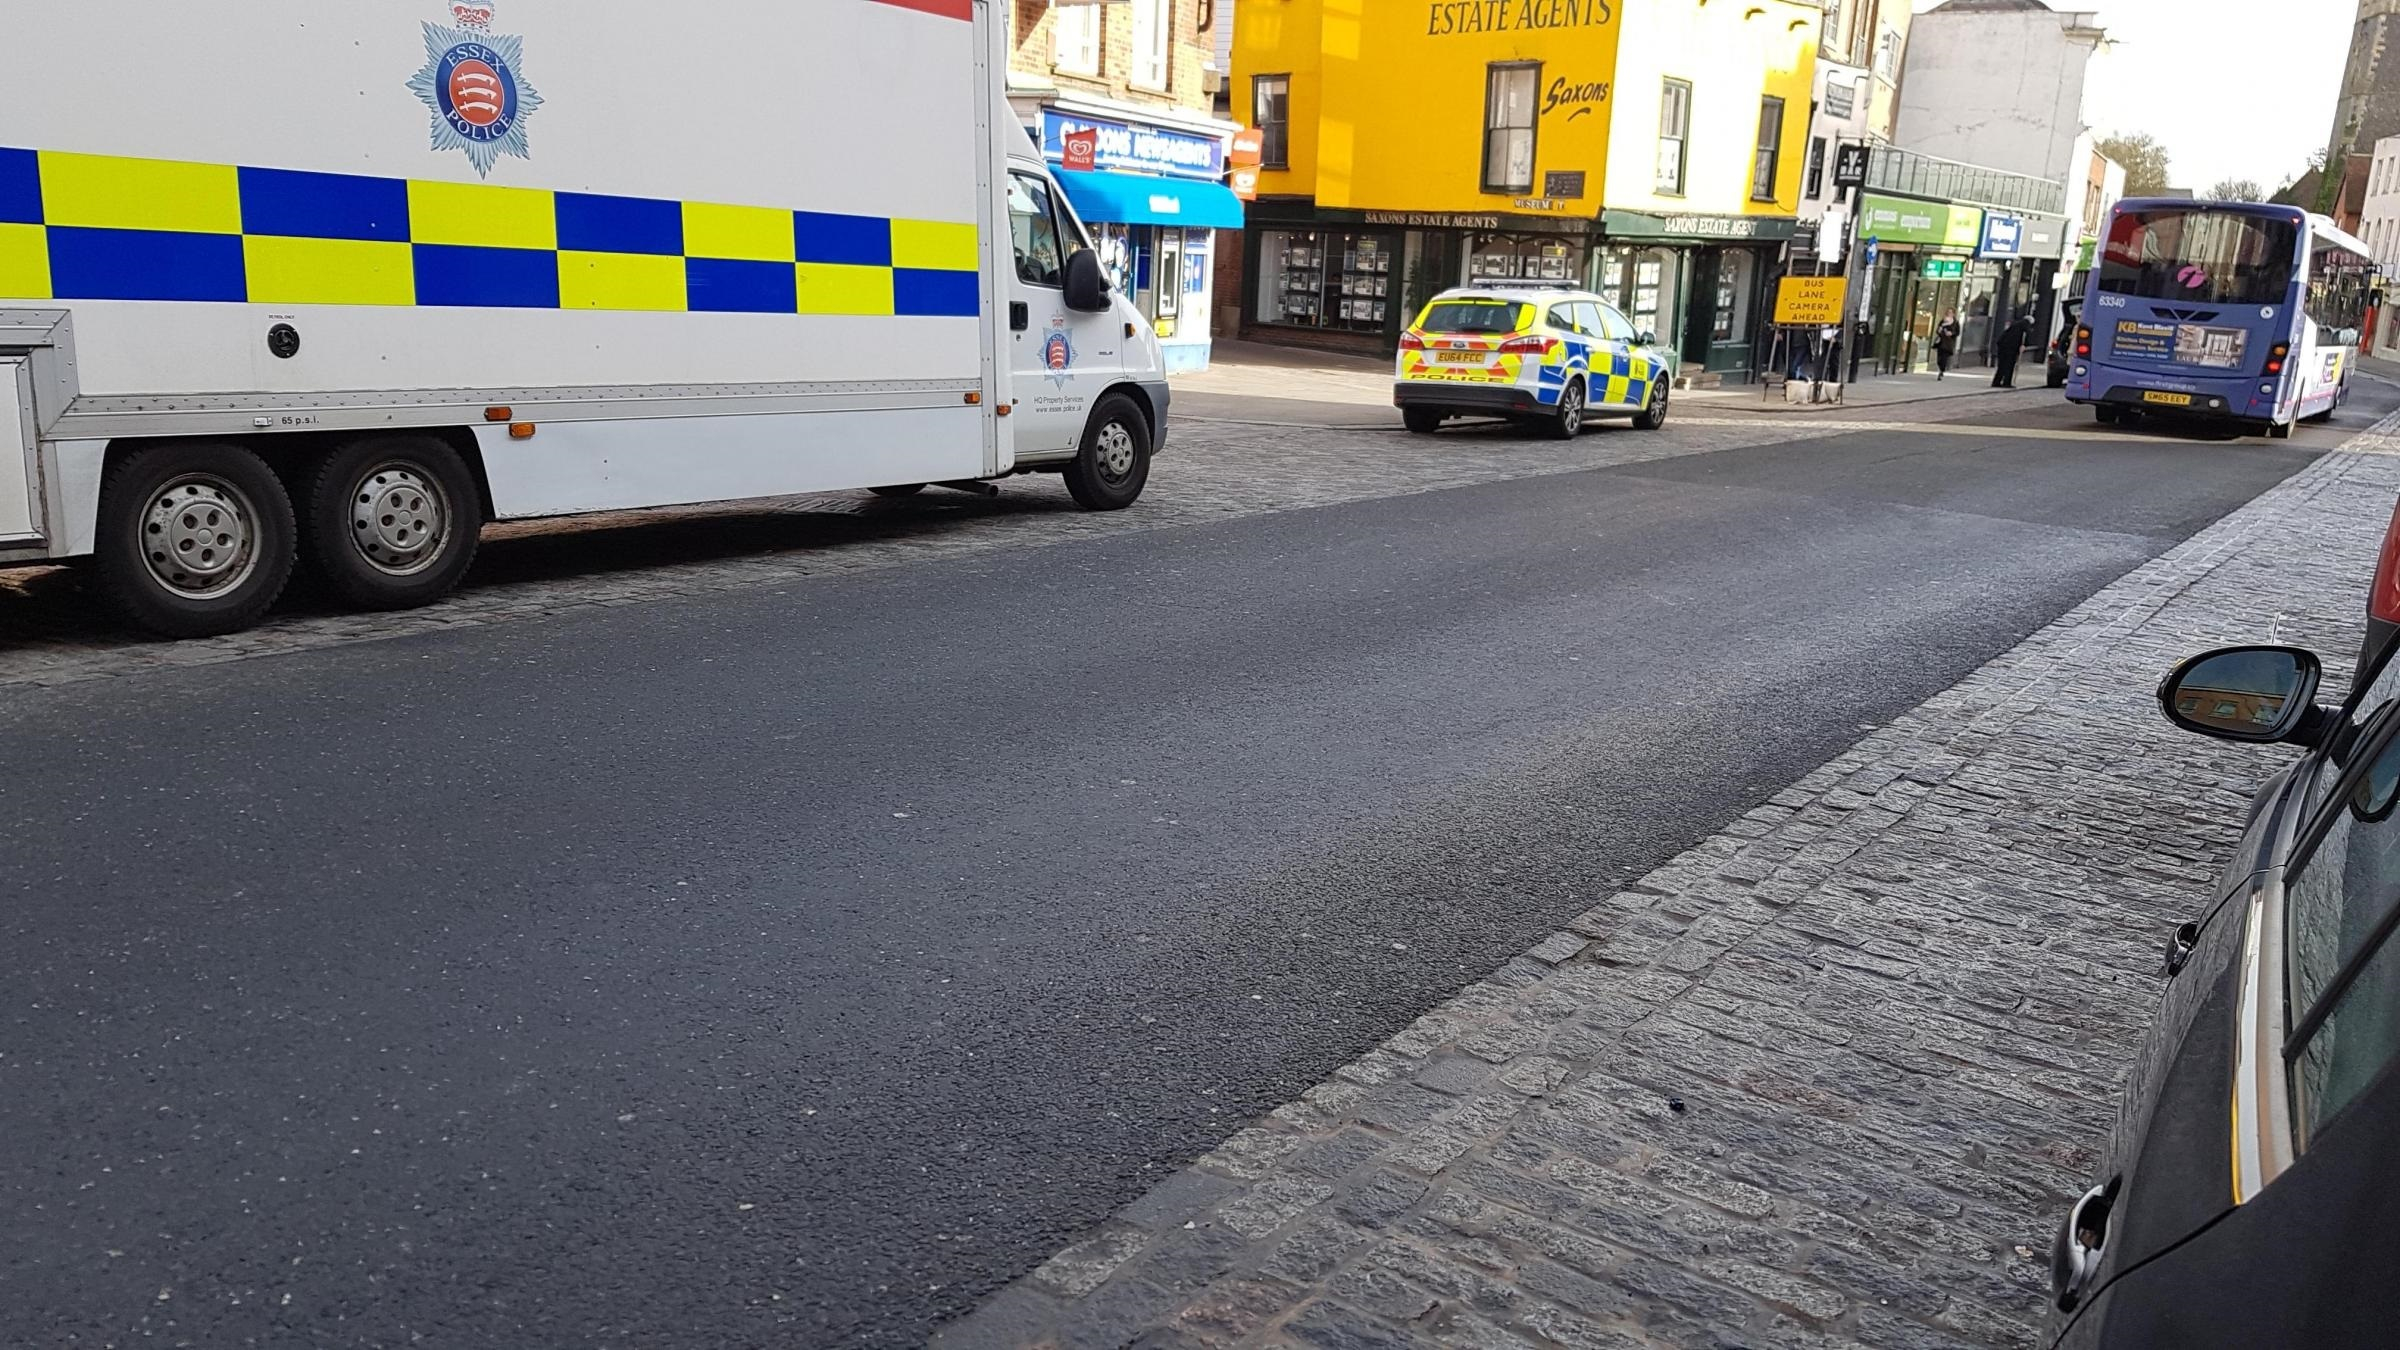 Patrols - police in Colchester High Street near George Street and Ryegate Road